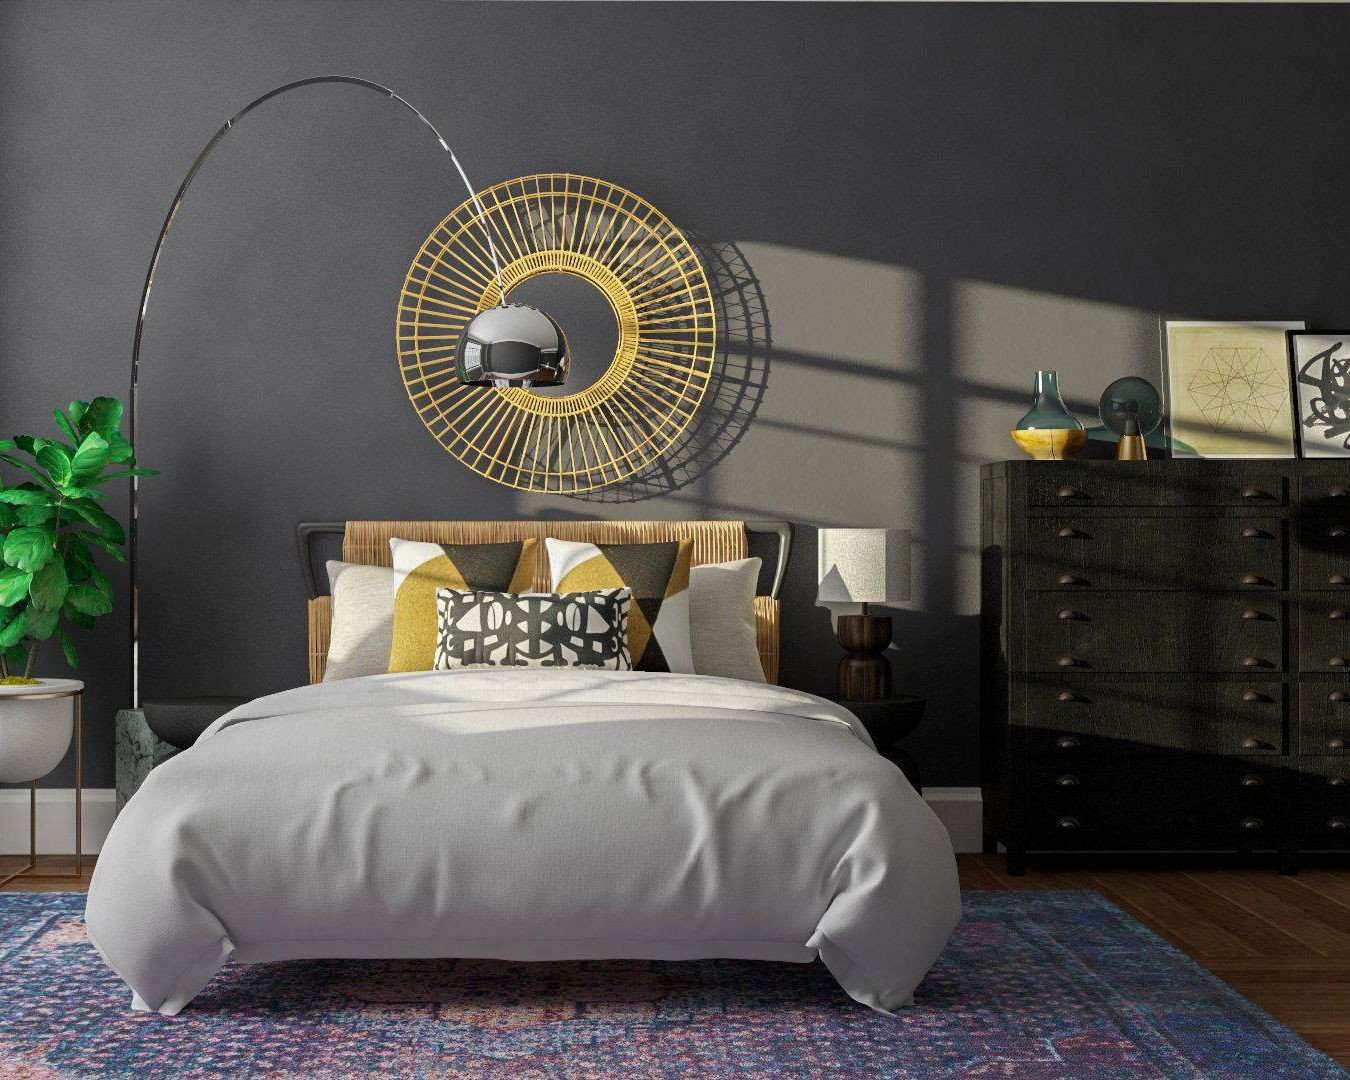 Cheap Bedroom Decor Online Shopping Awesome Moody Boho Bedroom Design Idea